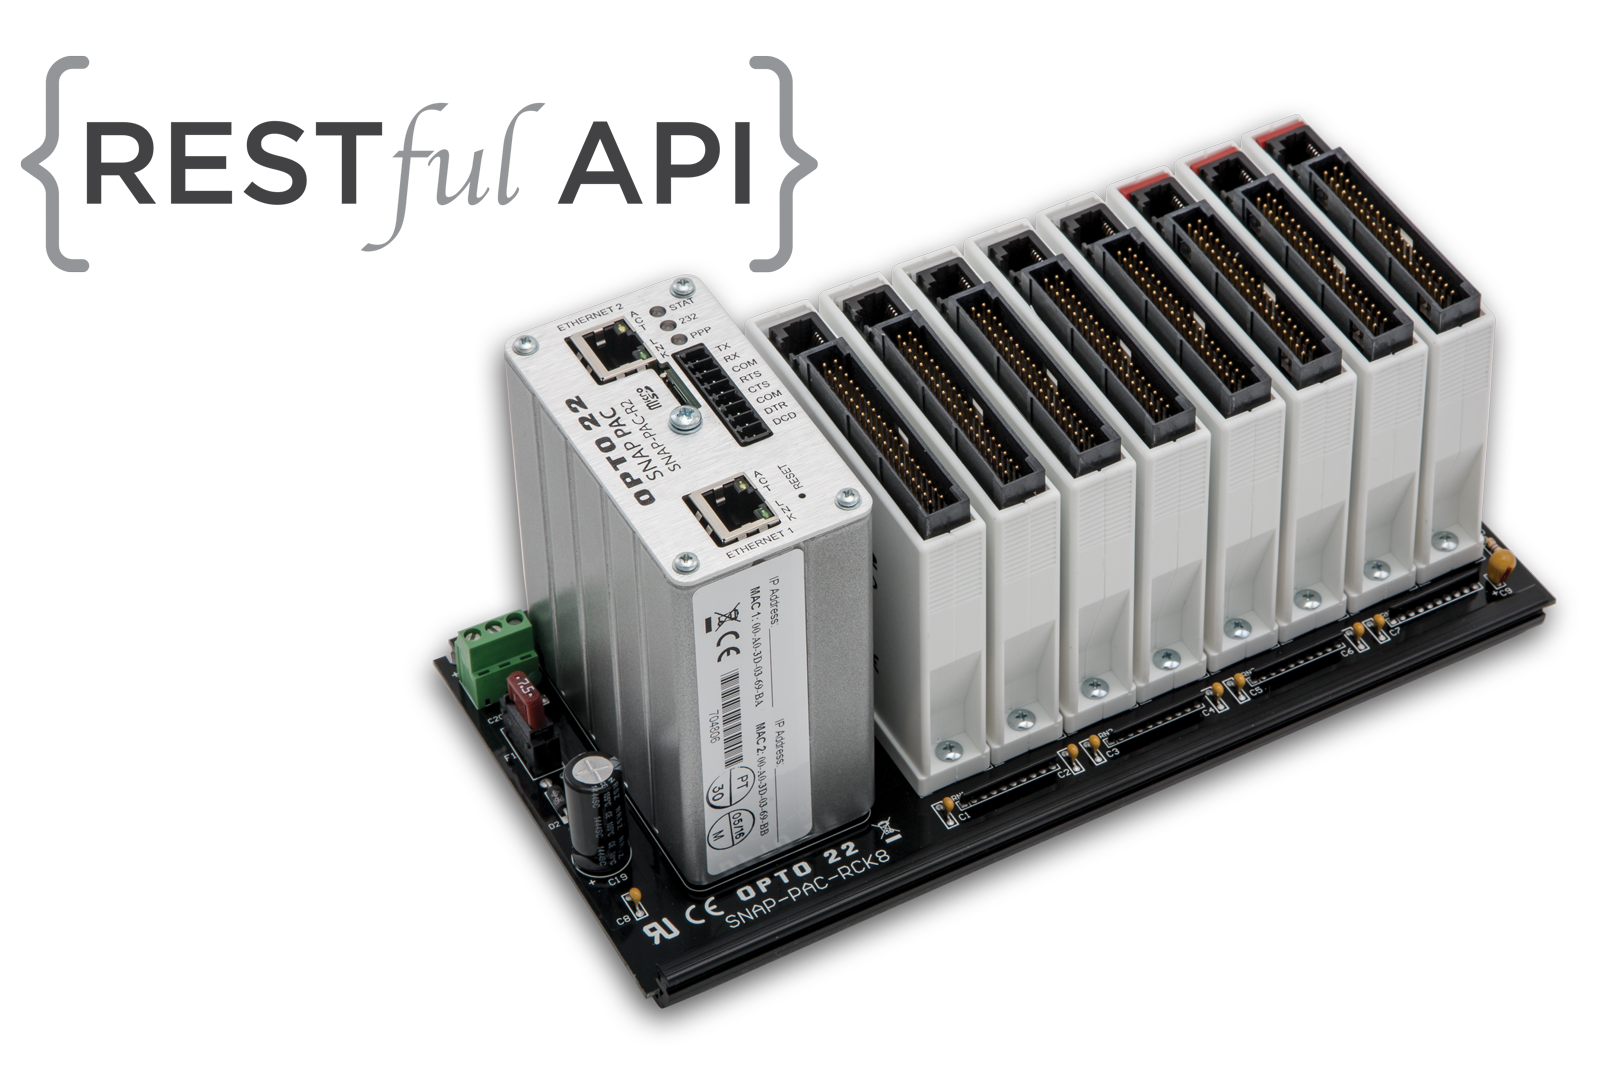 SNAP-PAC-R1 programmable automation controller with a RESTful API